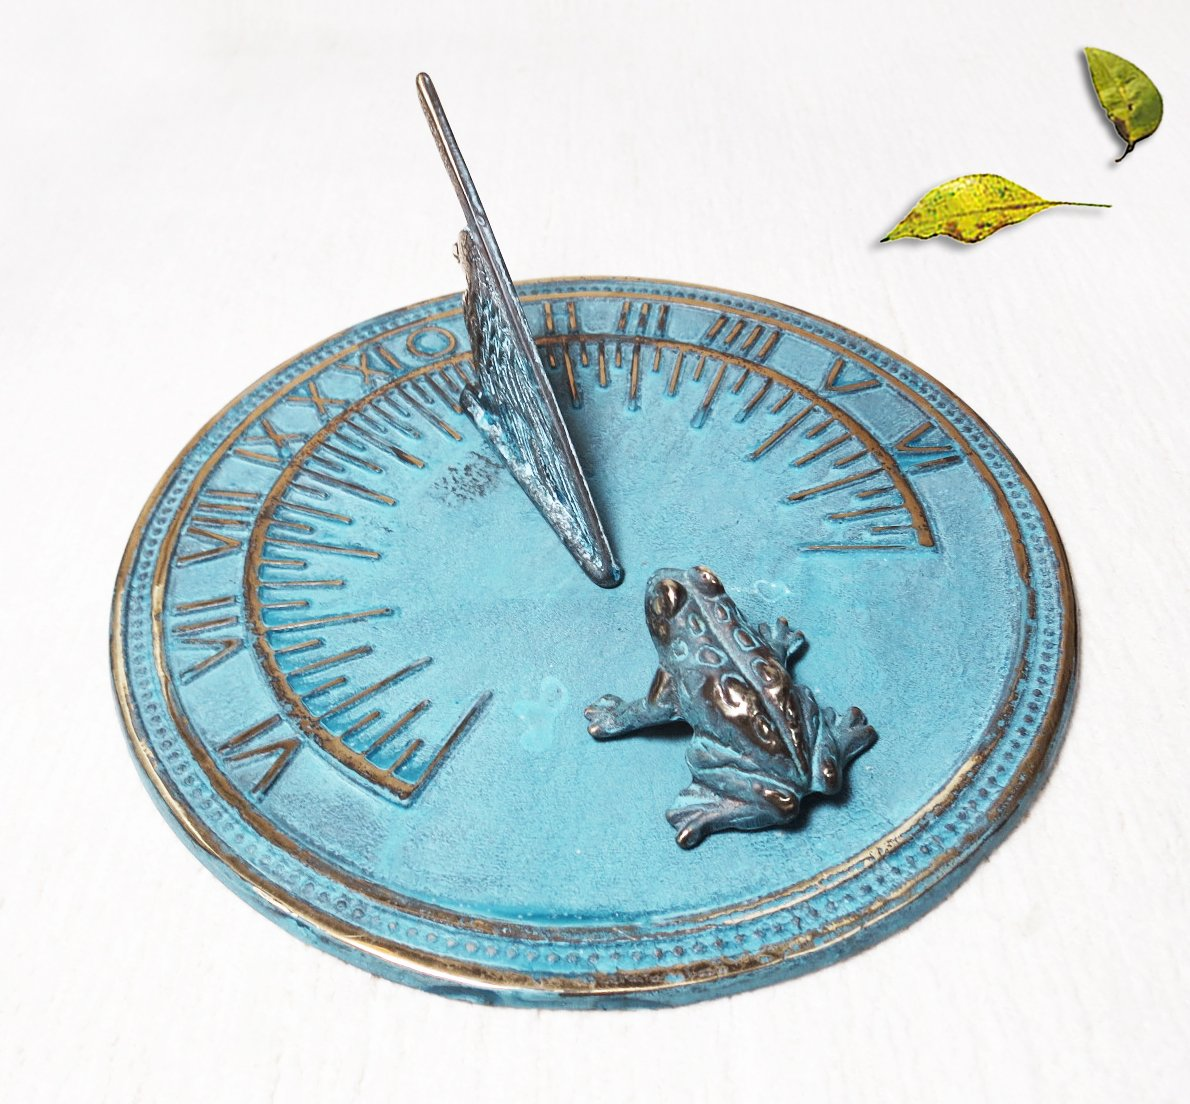 Decorative Brass Frog Sundial - 7'' inches wide